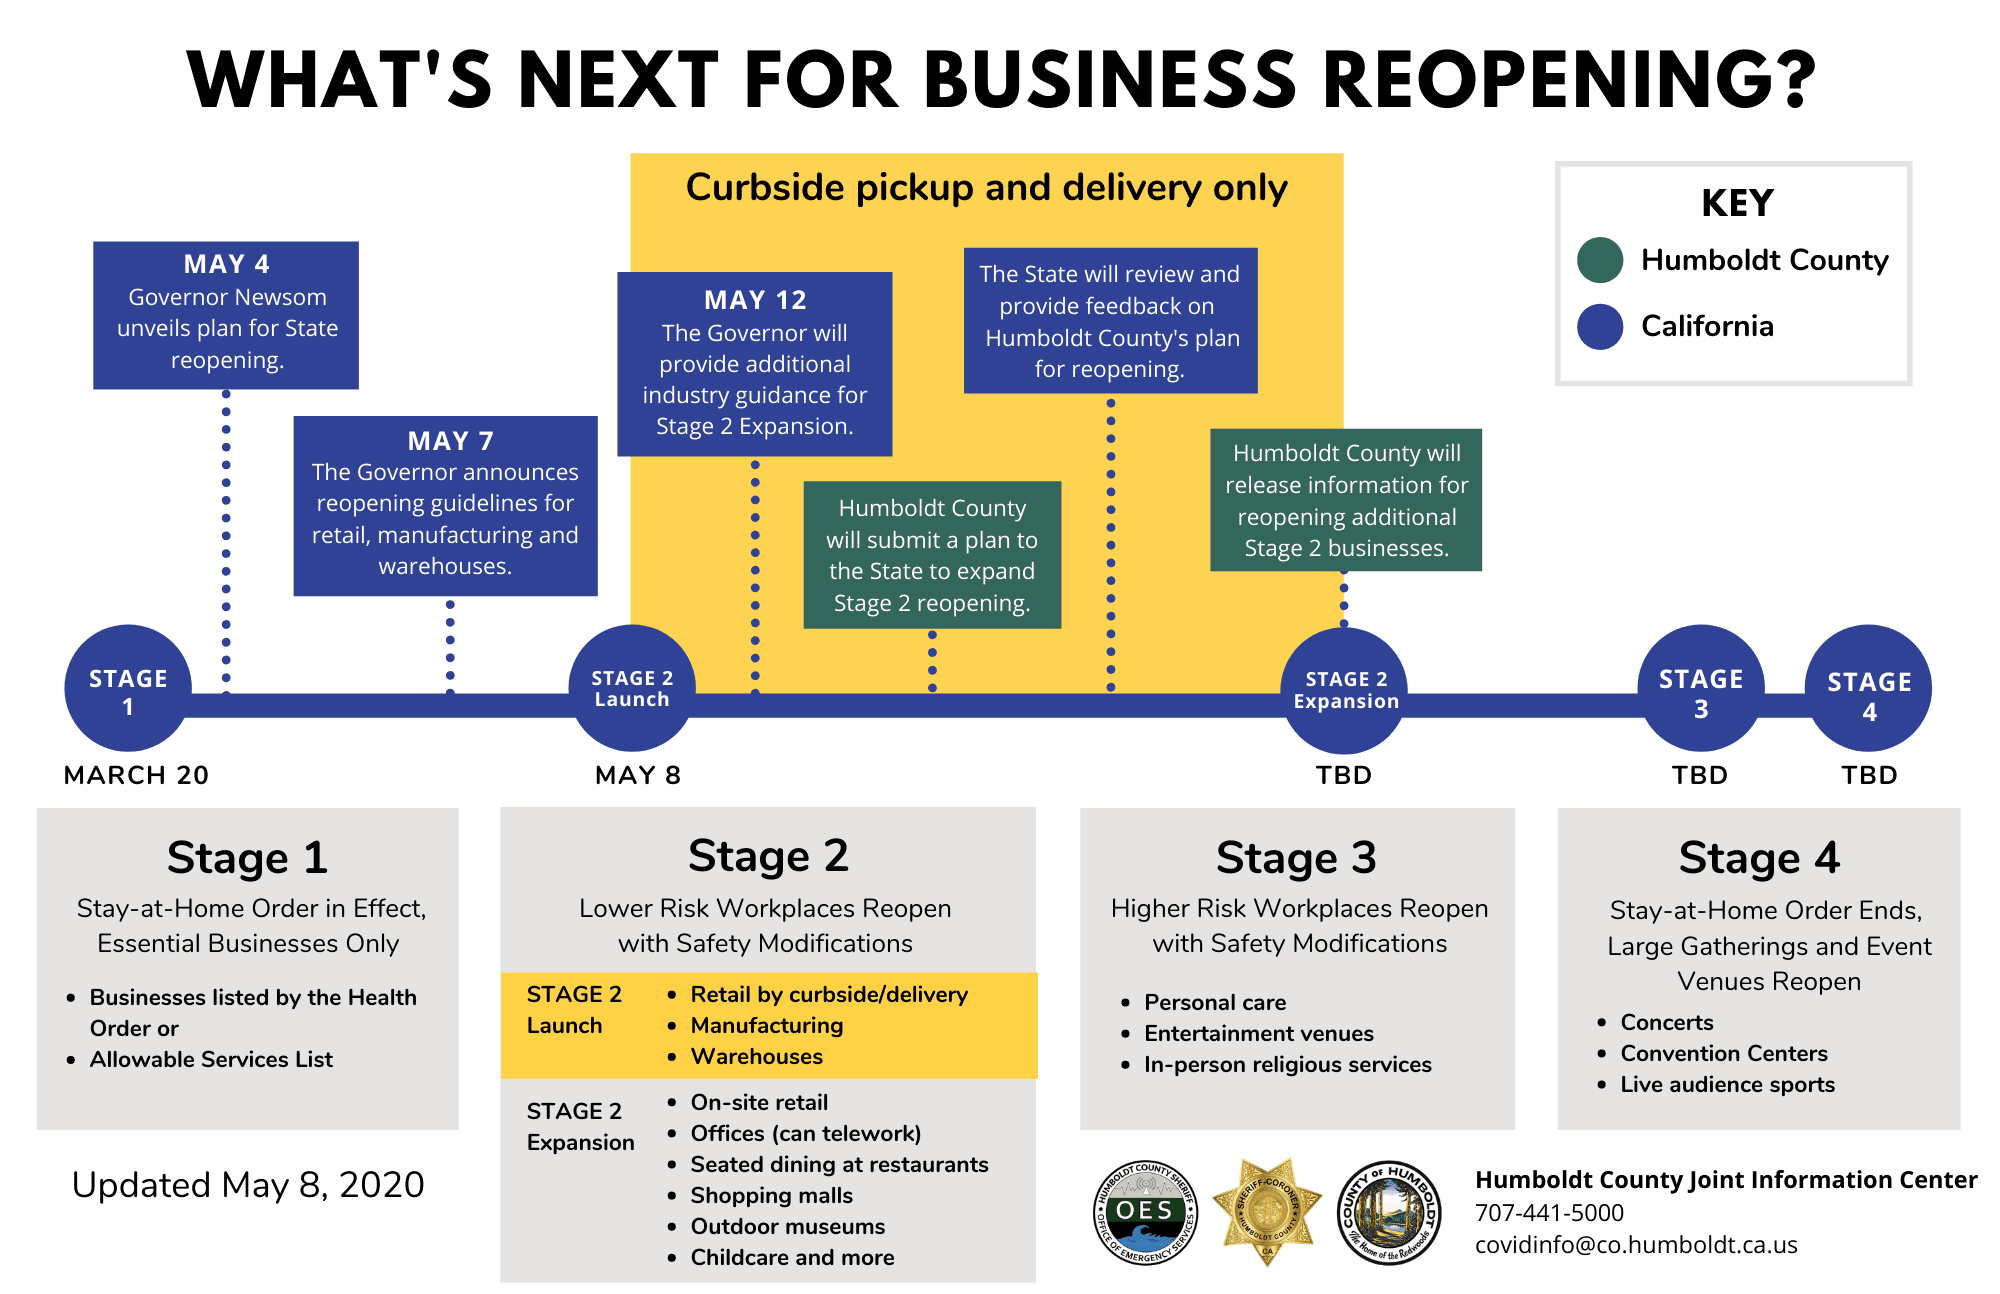 What's Next for Business Reopening